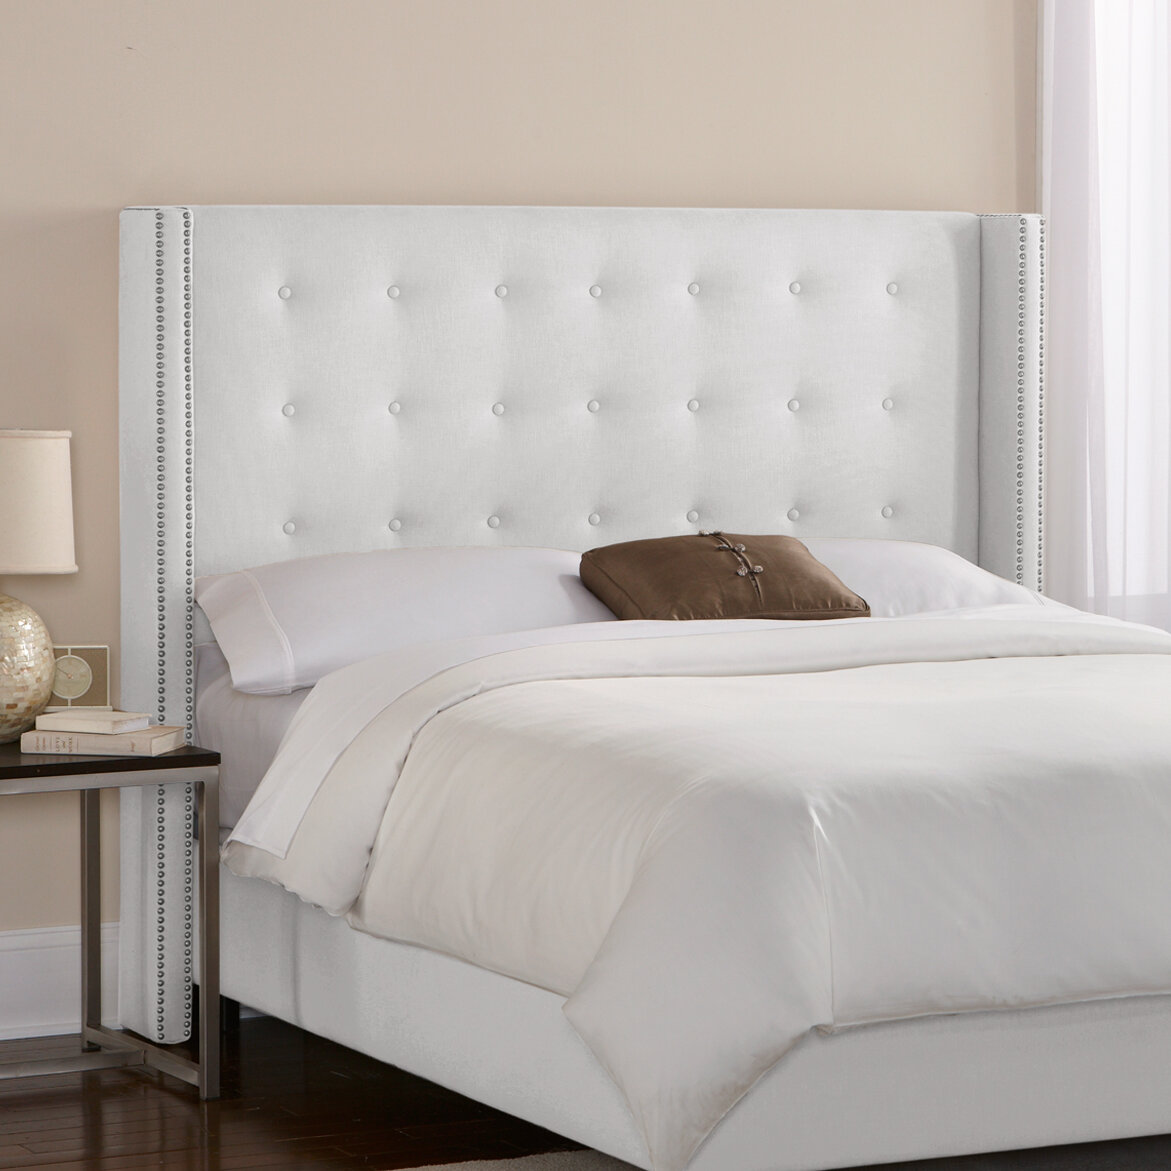 pdp and panel reviews corneau main joss headboard upholstered headboards furniture